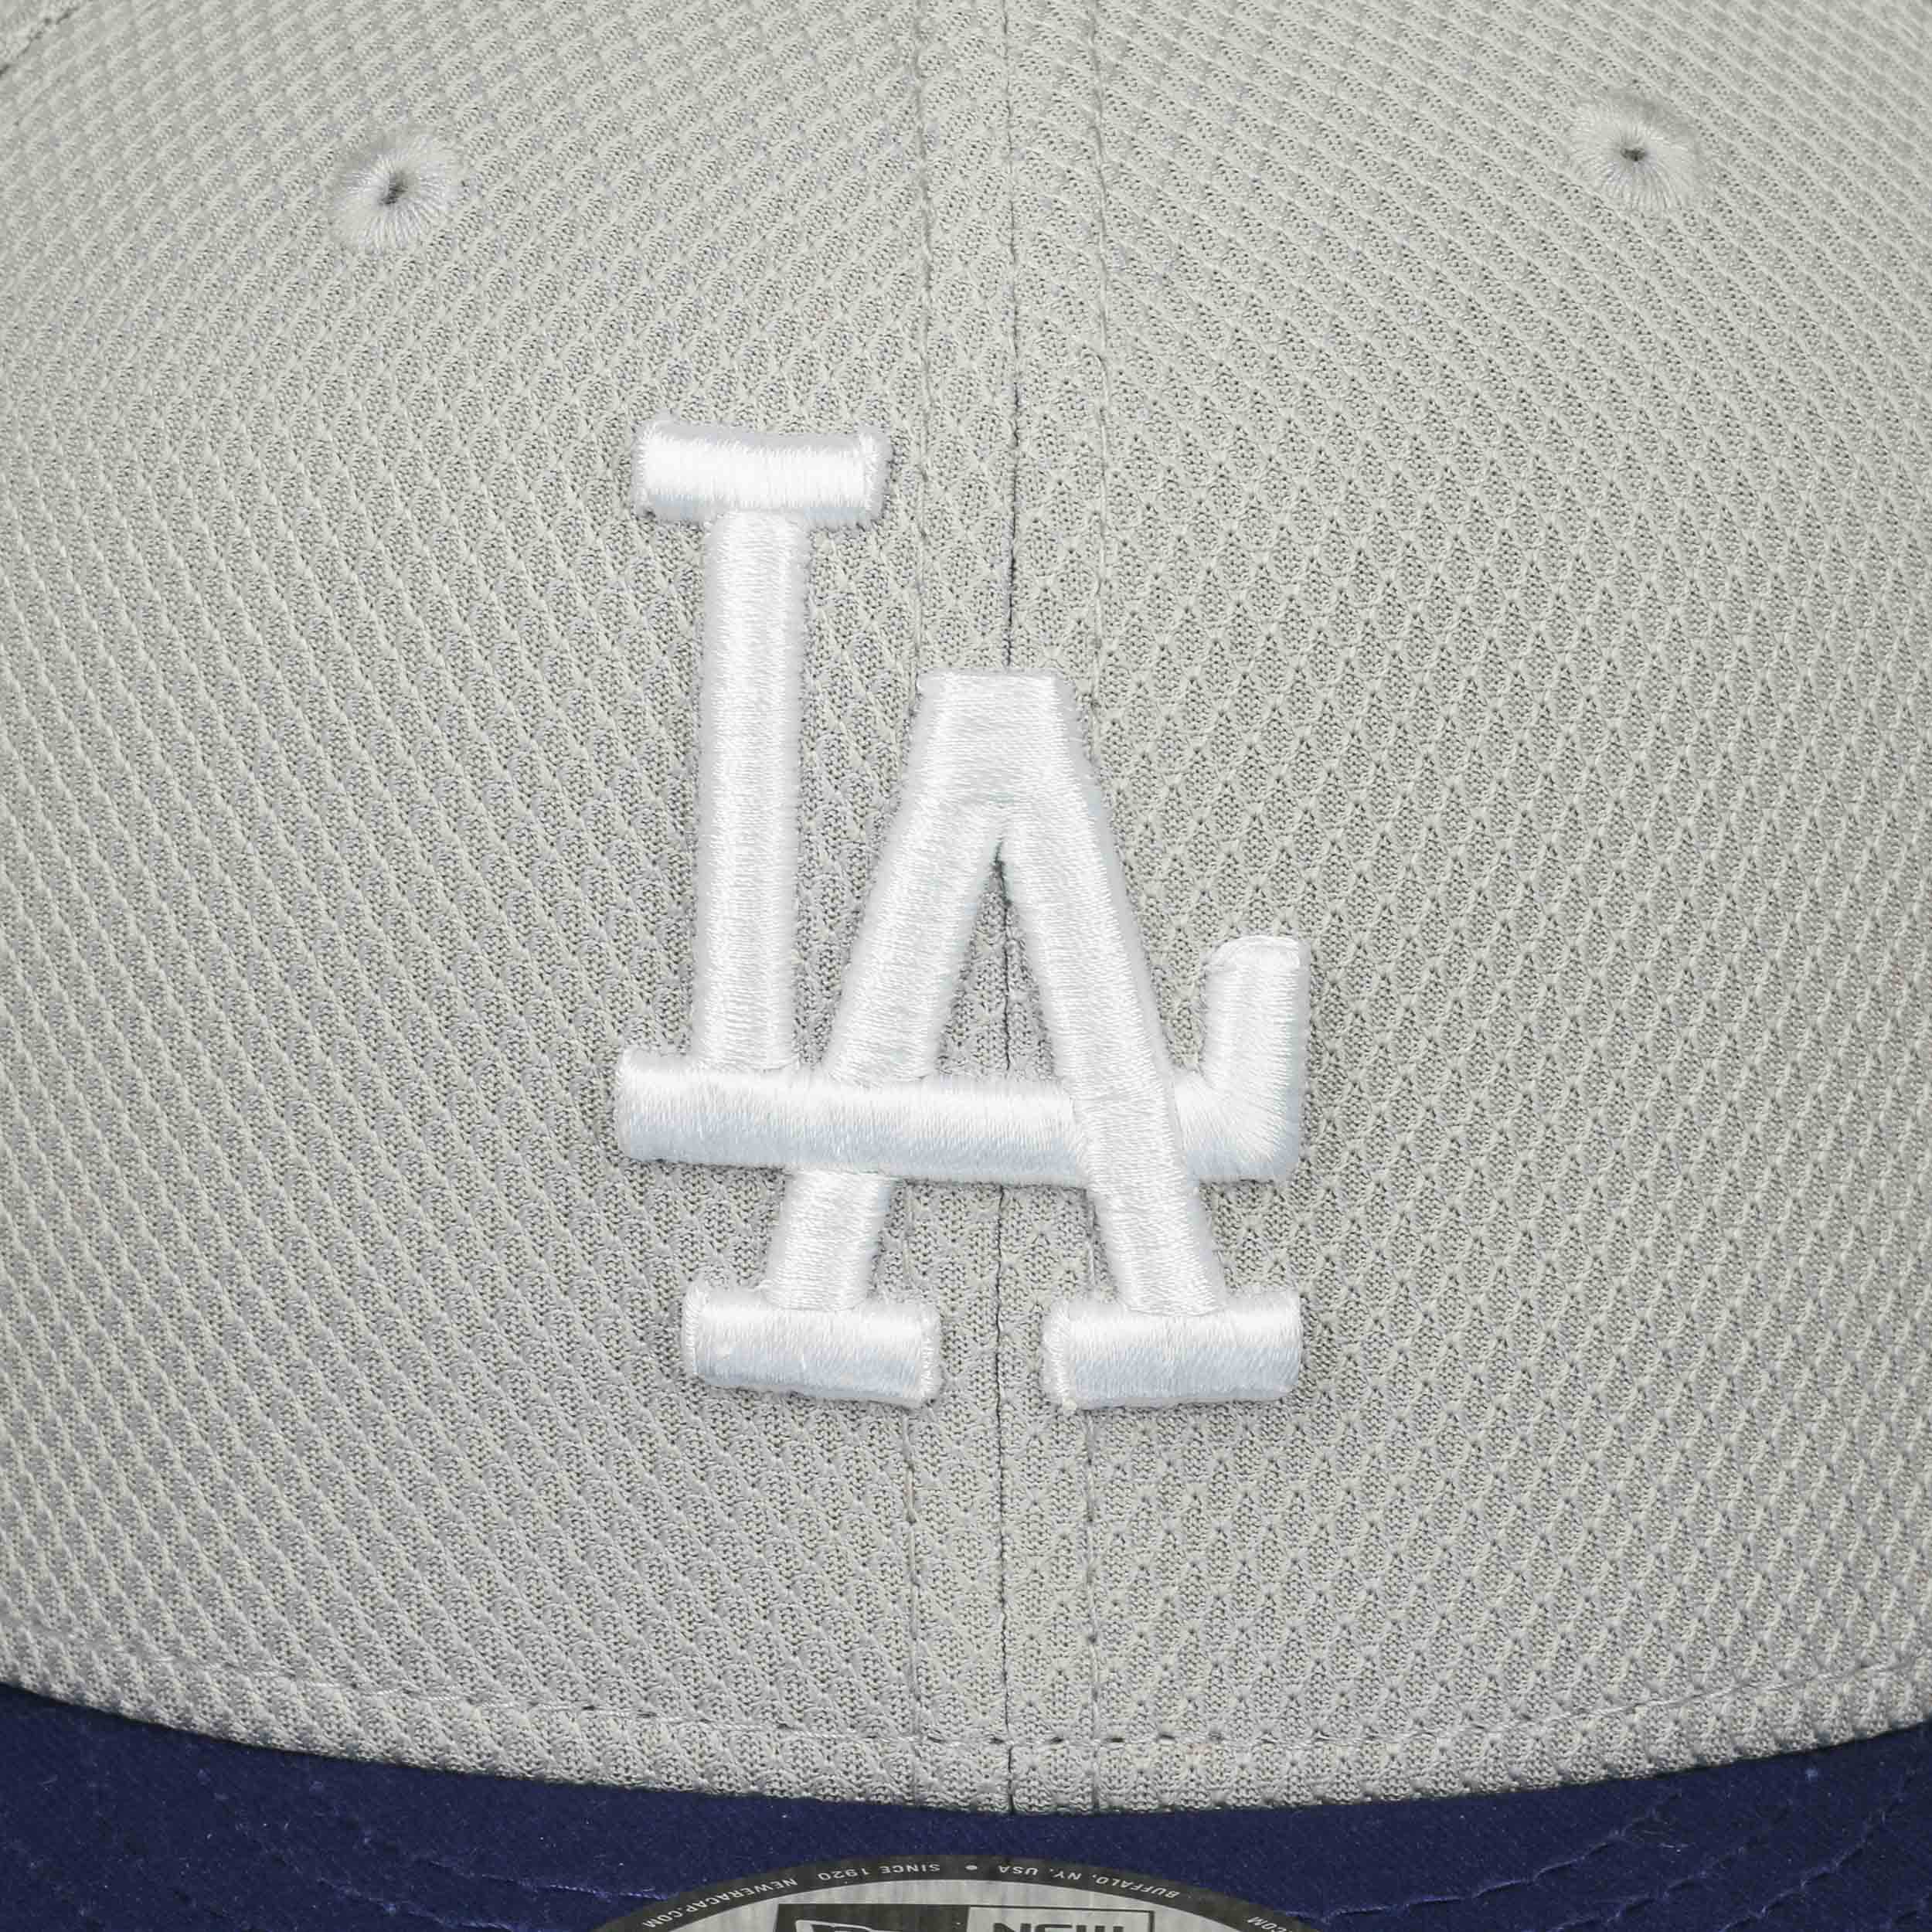 9fifty la dodgers diamond cap by new era gbp 2595 hats caps 9fifty la dodgers diamond cap by new era 4 buycottarizona Image collections